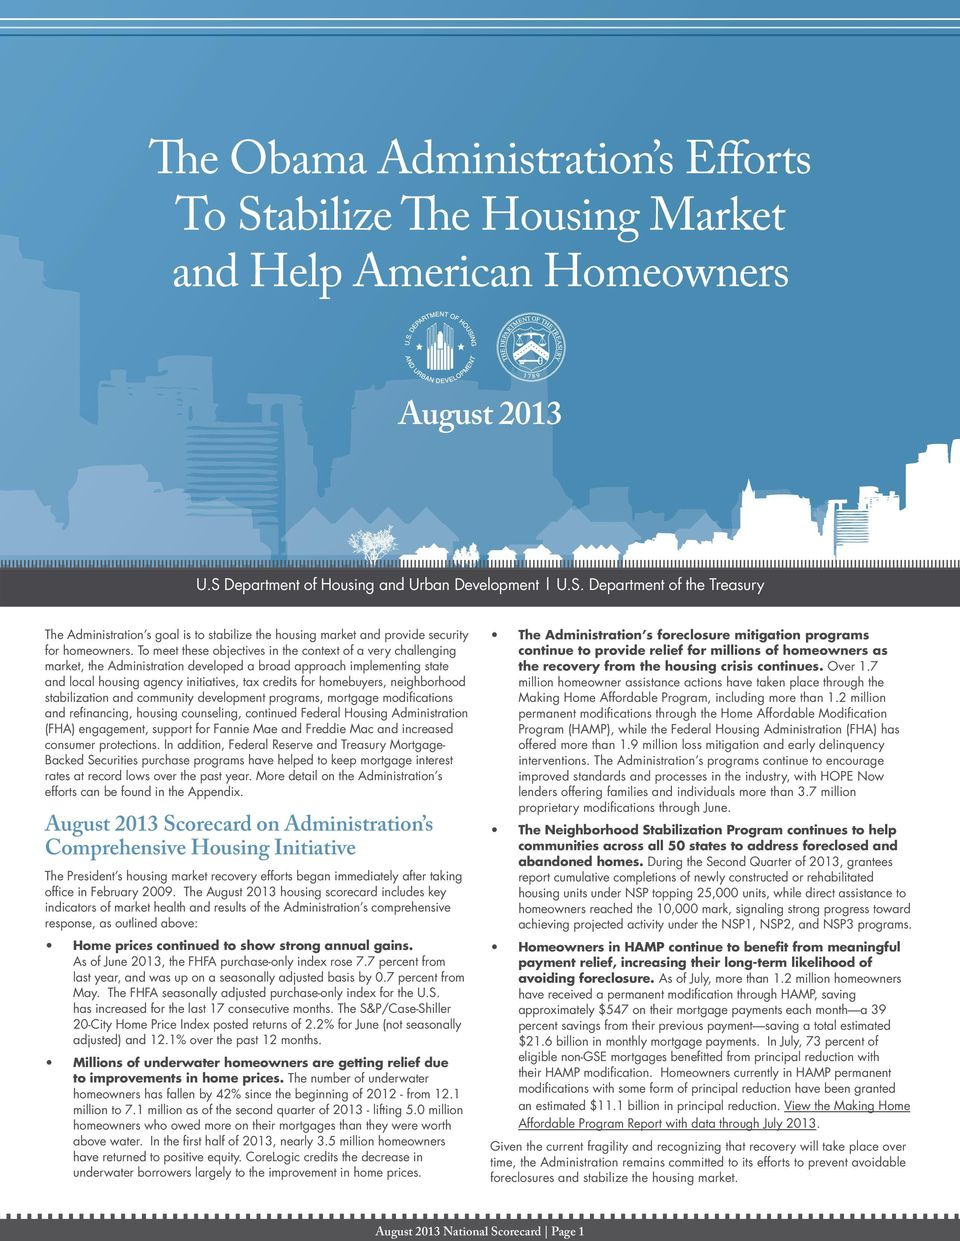 To meet these objectives in the context of a very challenging market, the Administration developed a broad approach implementing state and local housing agency initiatives, tax credits for